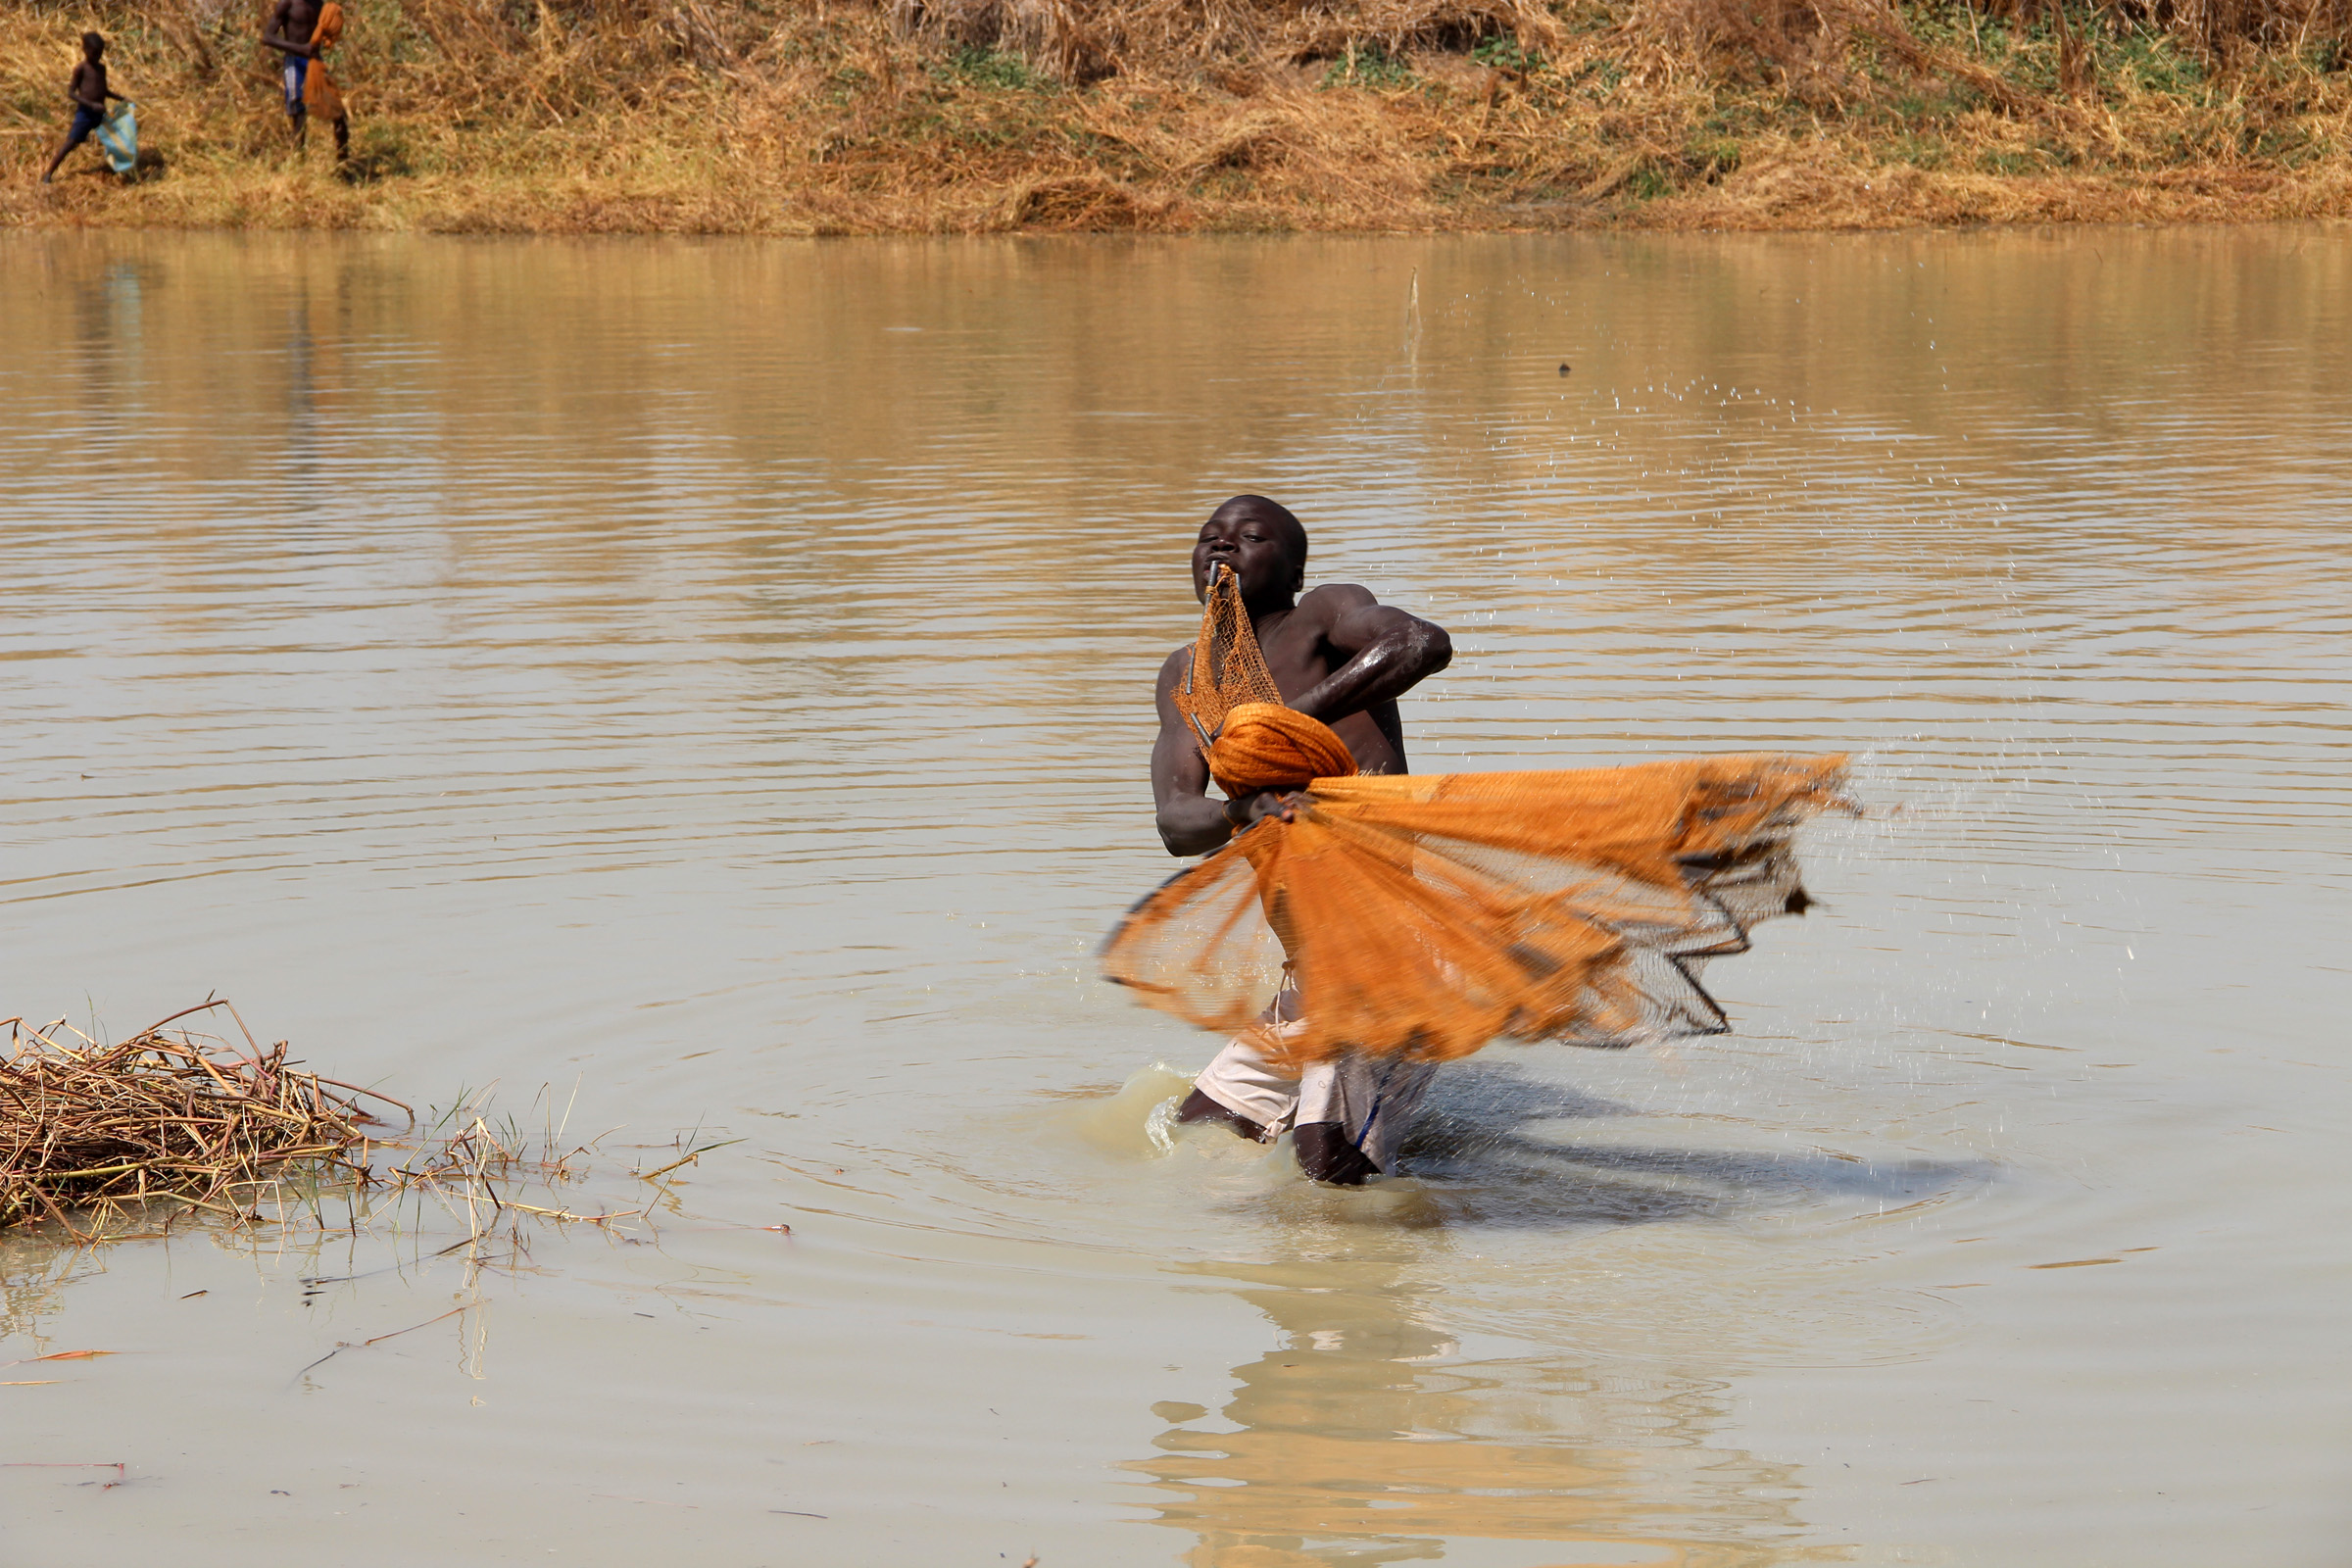 Large ponds after the floods are providing fish for some residents in Chad's southern Mayo Kebbi Est region